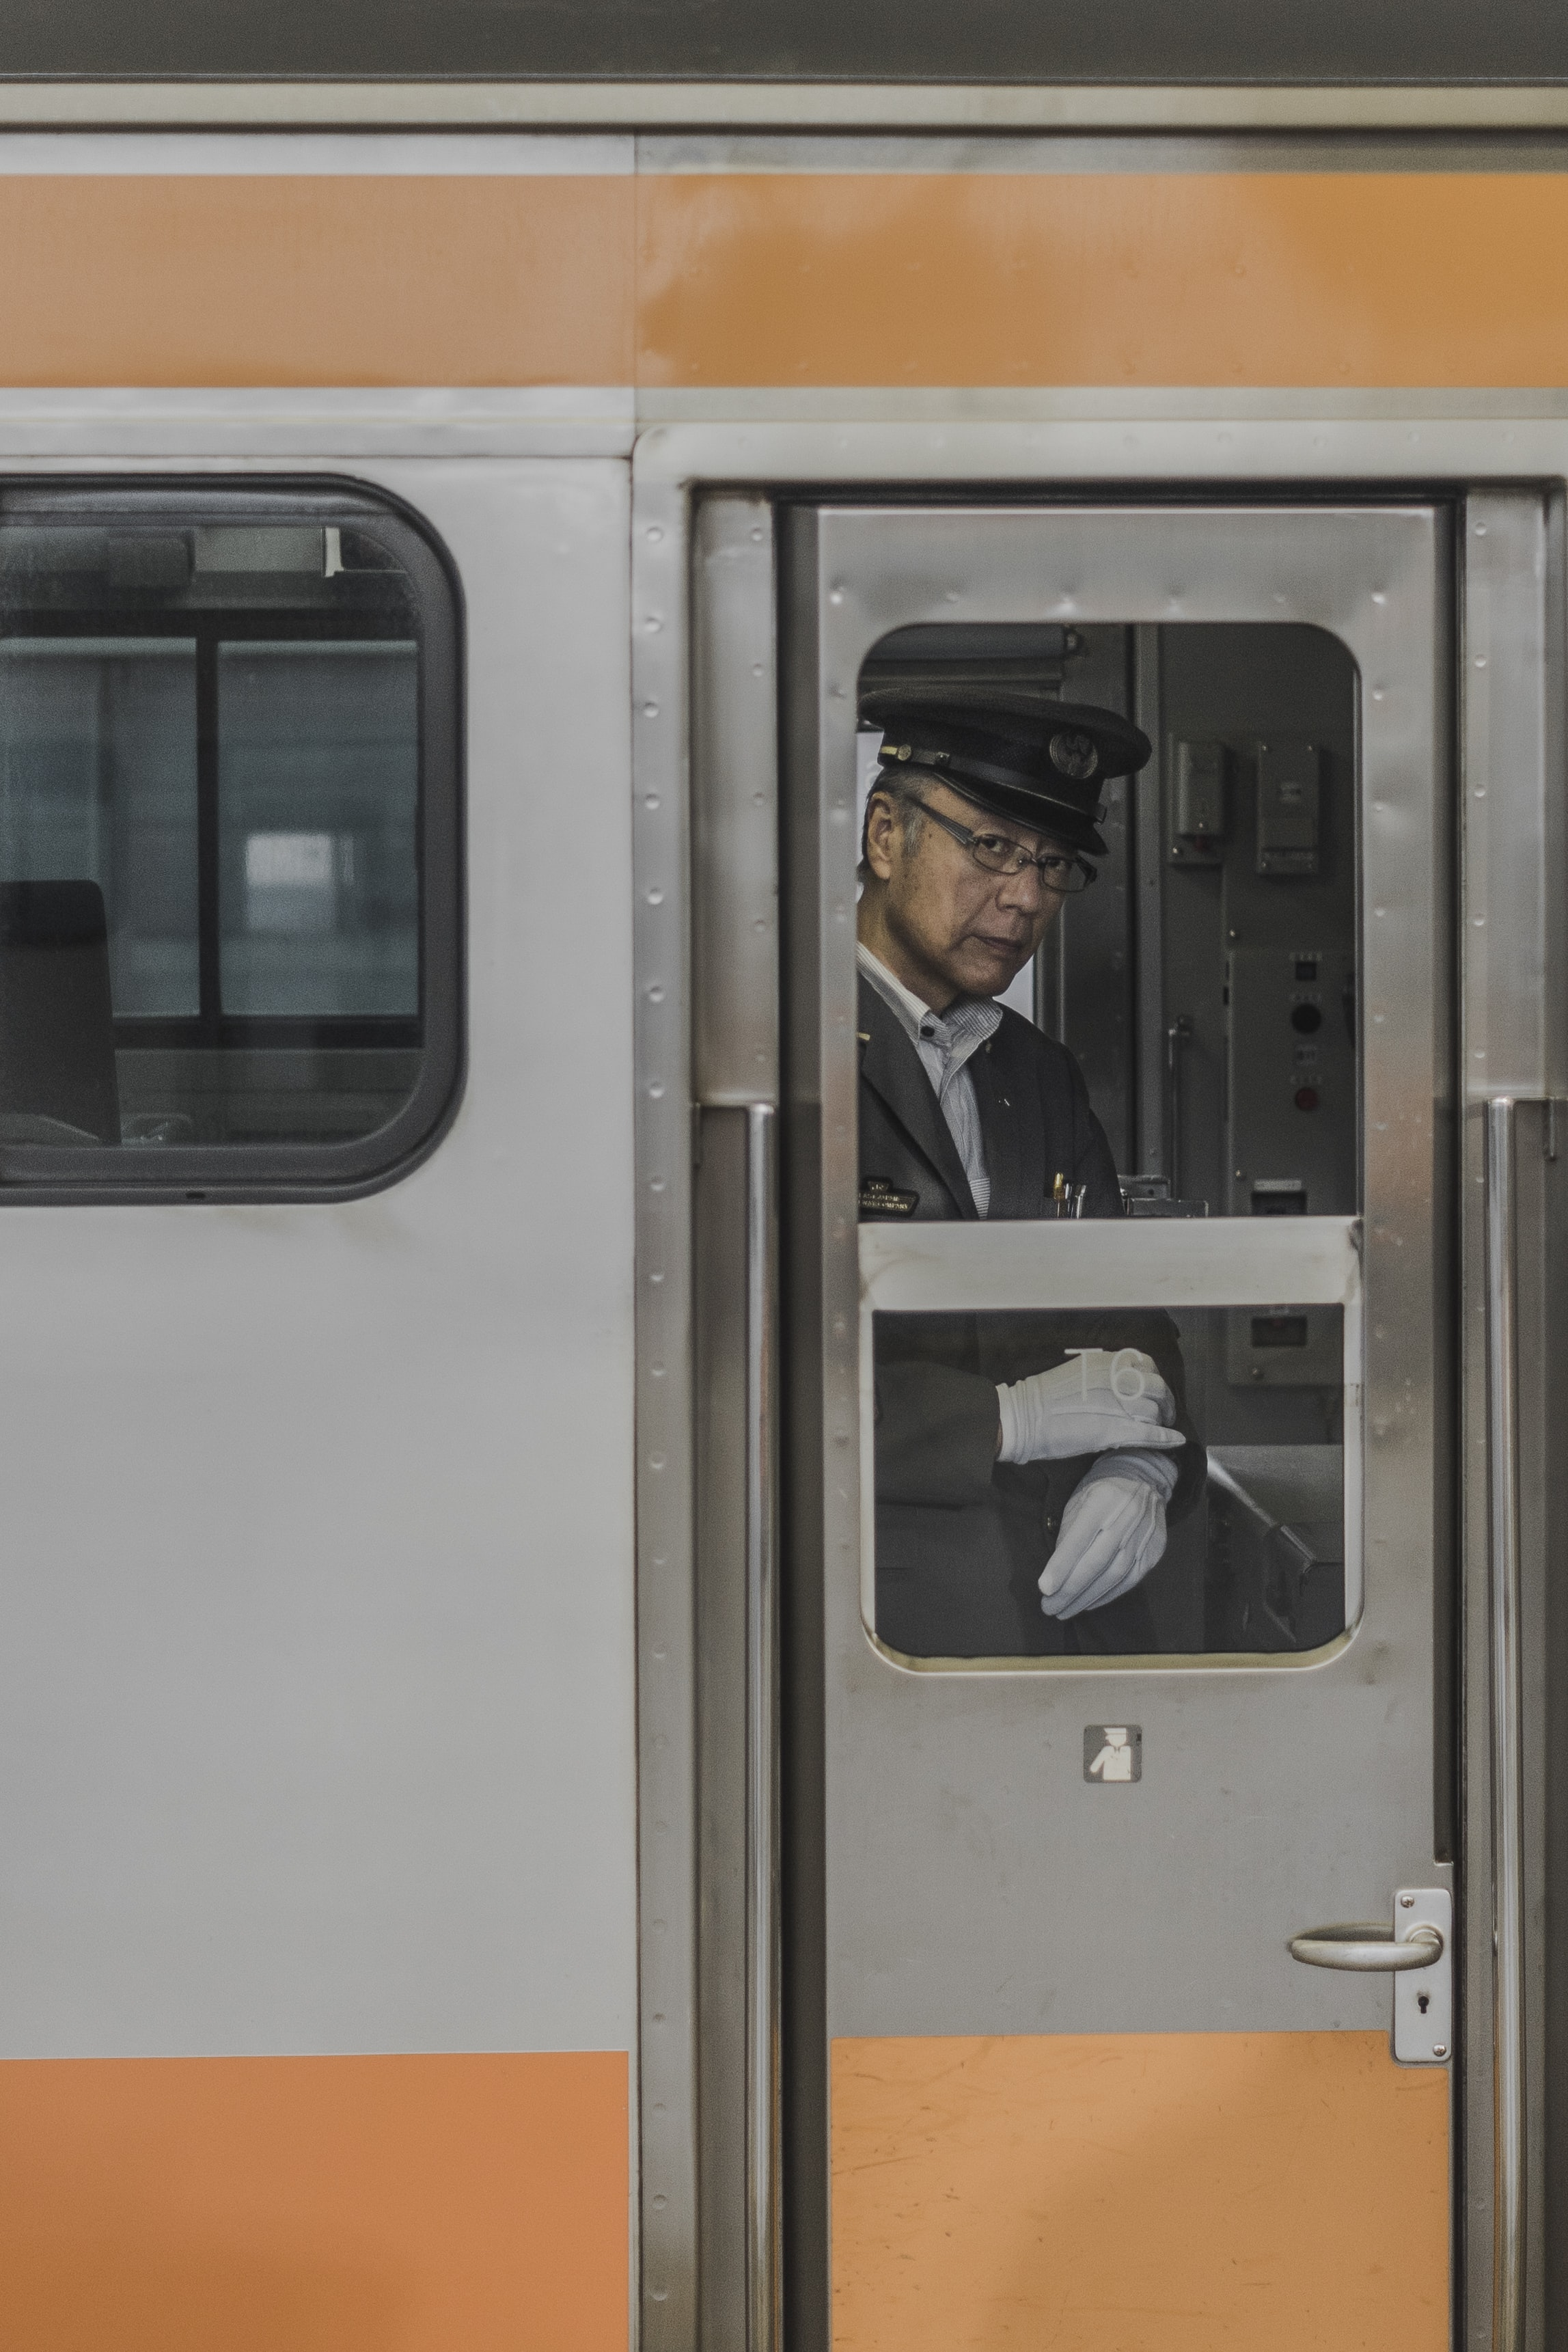 A male train conductor with white gloves in one of the subway trains in Tokyo.